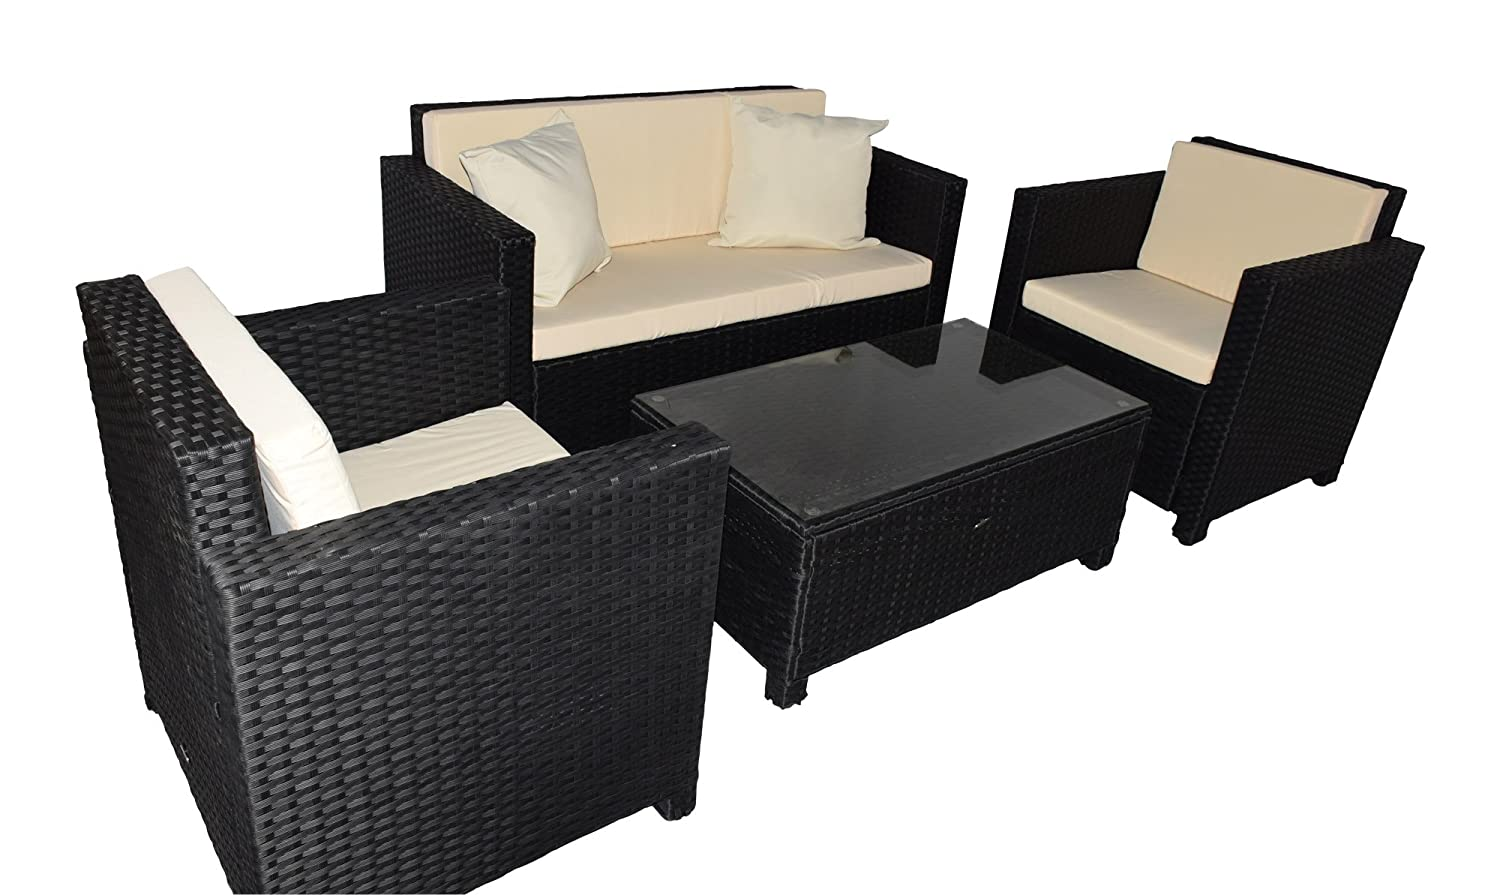 gartenm bel gartenset sitzgruppe rattan cannes schwarz g nstig bestellen. Black Bedroom Furniture Sets. Home Design Ideas